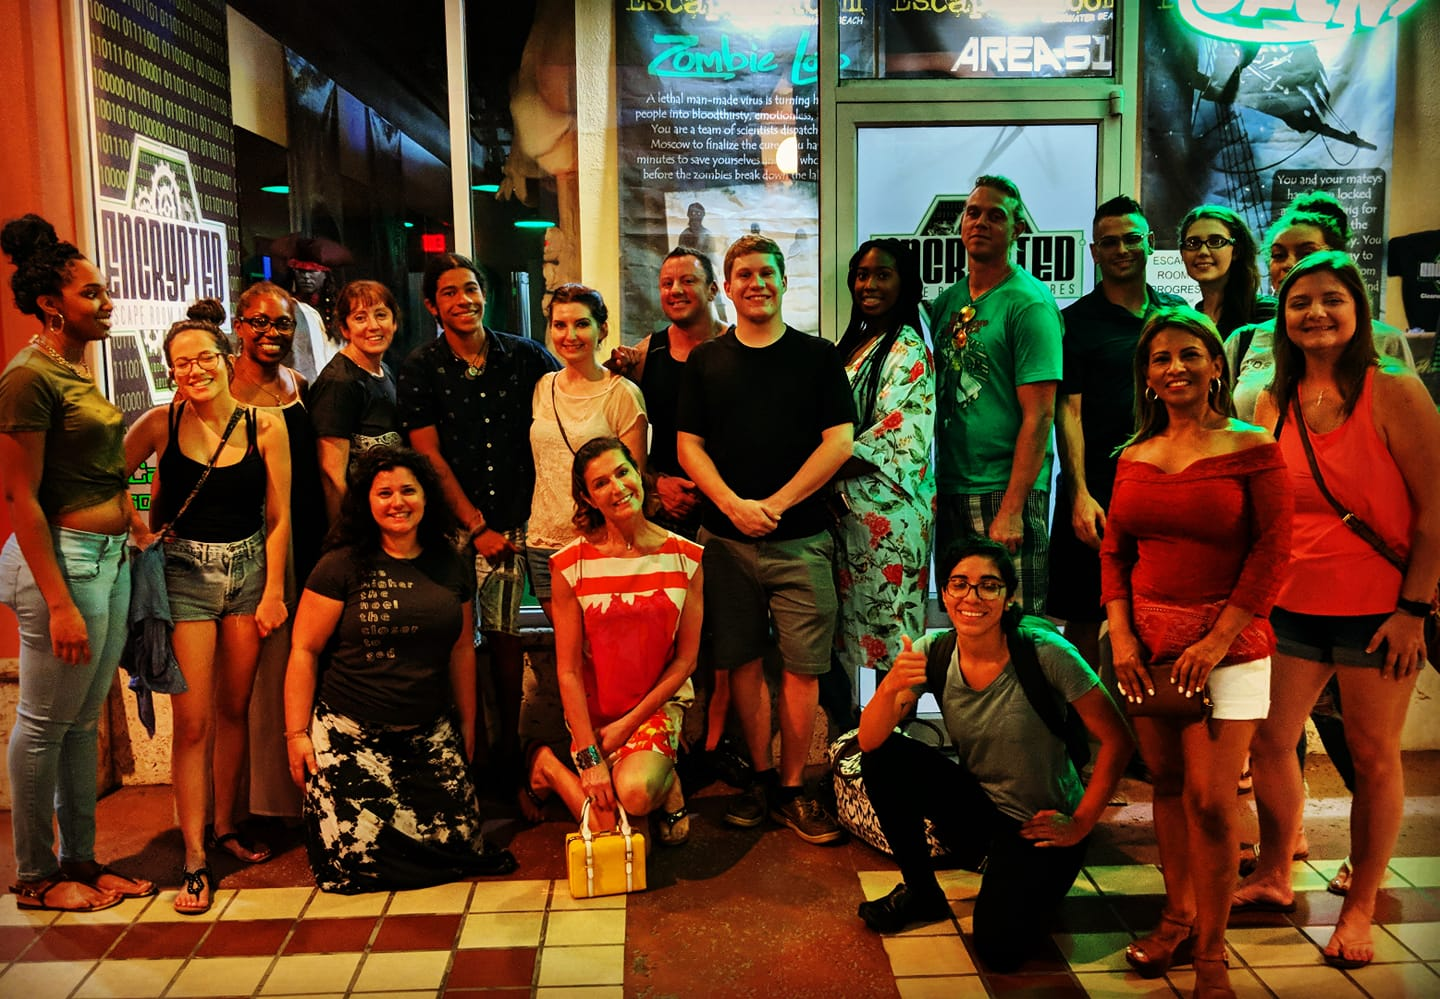 Escape_room_clearwater_beach_escape_rooms_tampa_bay_private_corporate_team_building_events_parties_bachelor.jpg